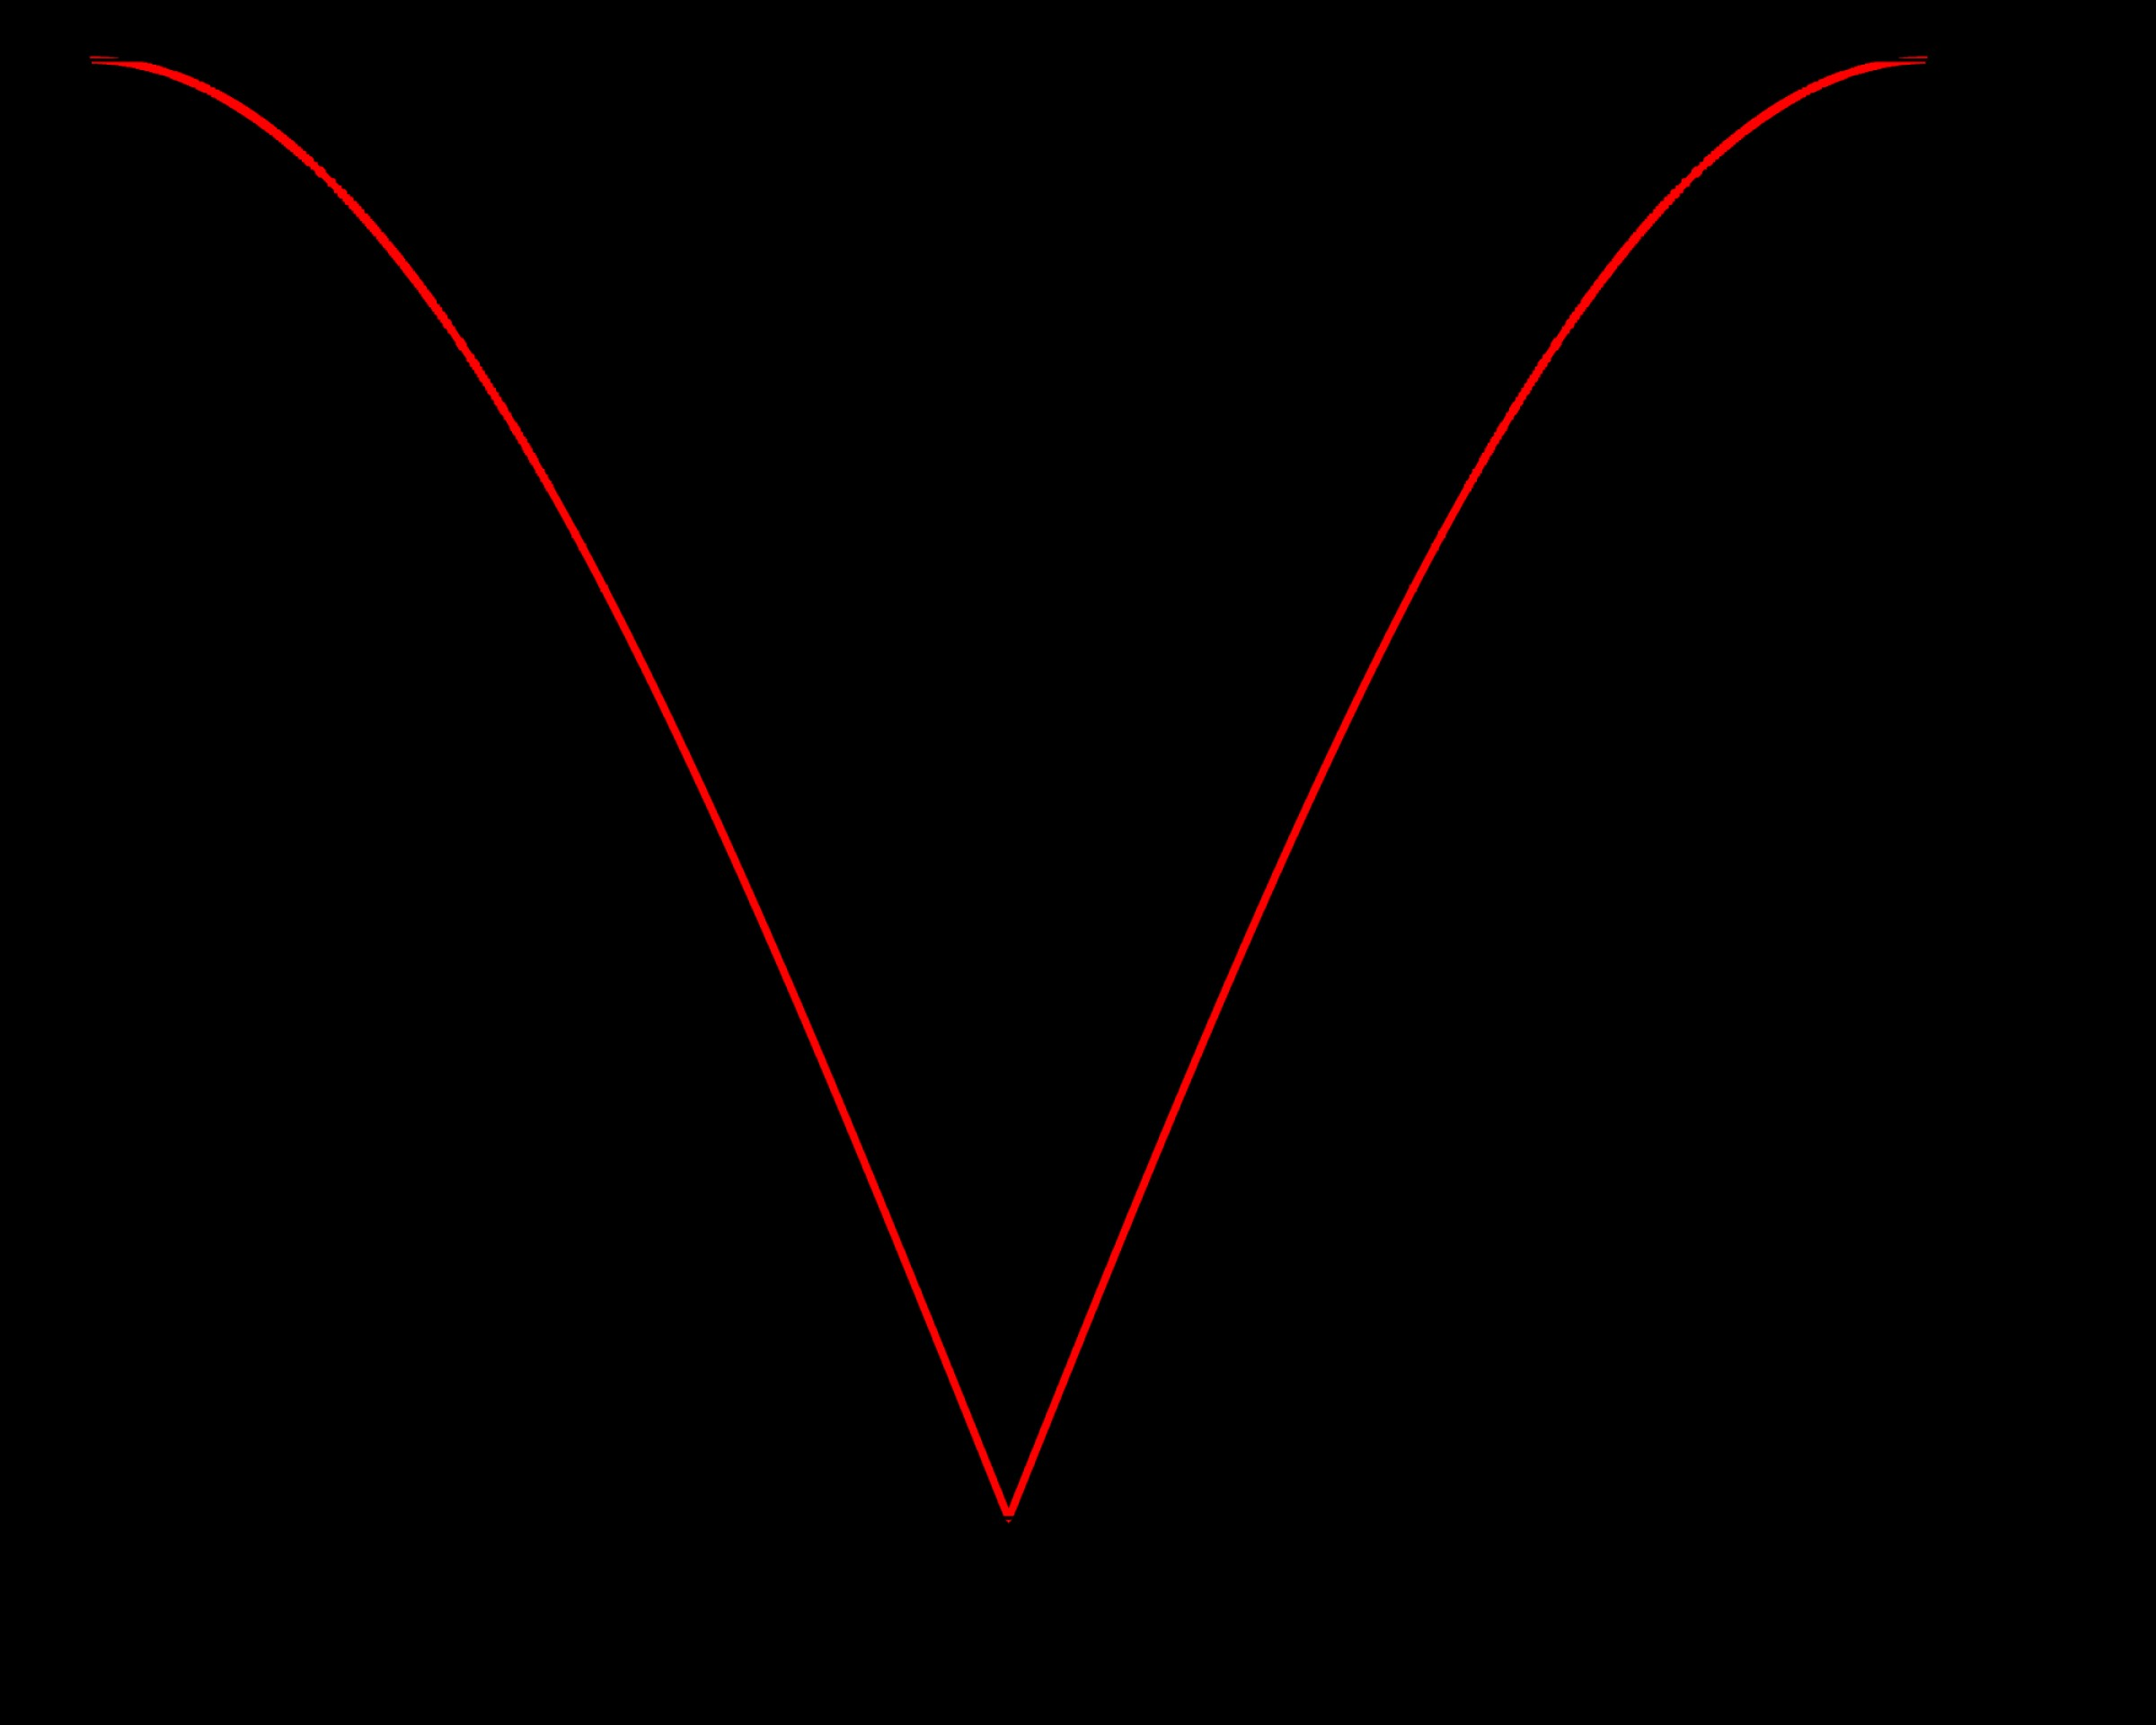 Graphing Vectors Physics: Reduced Mathbfk Vector In The First Brillouin Zone